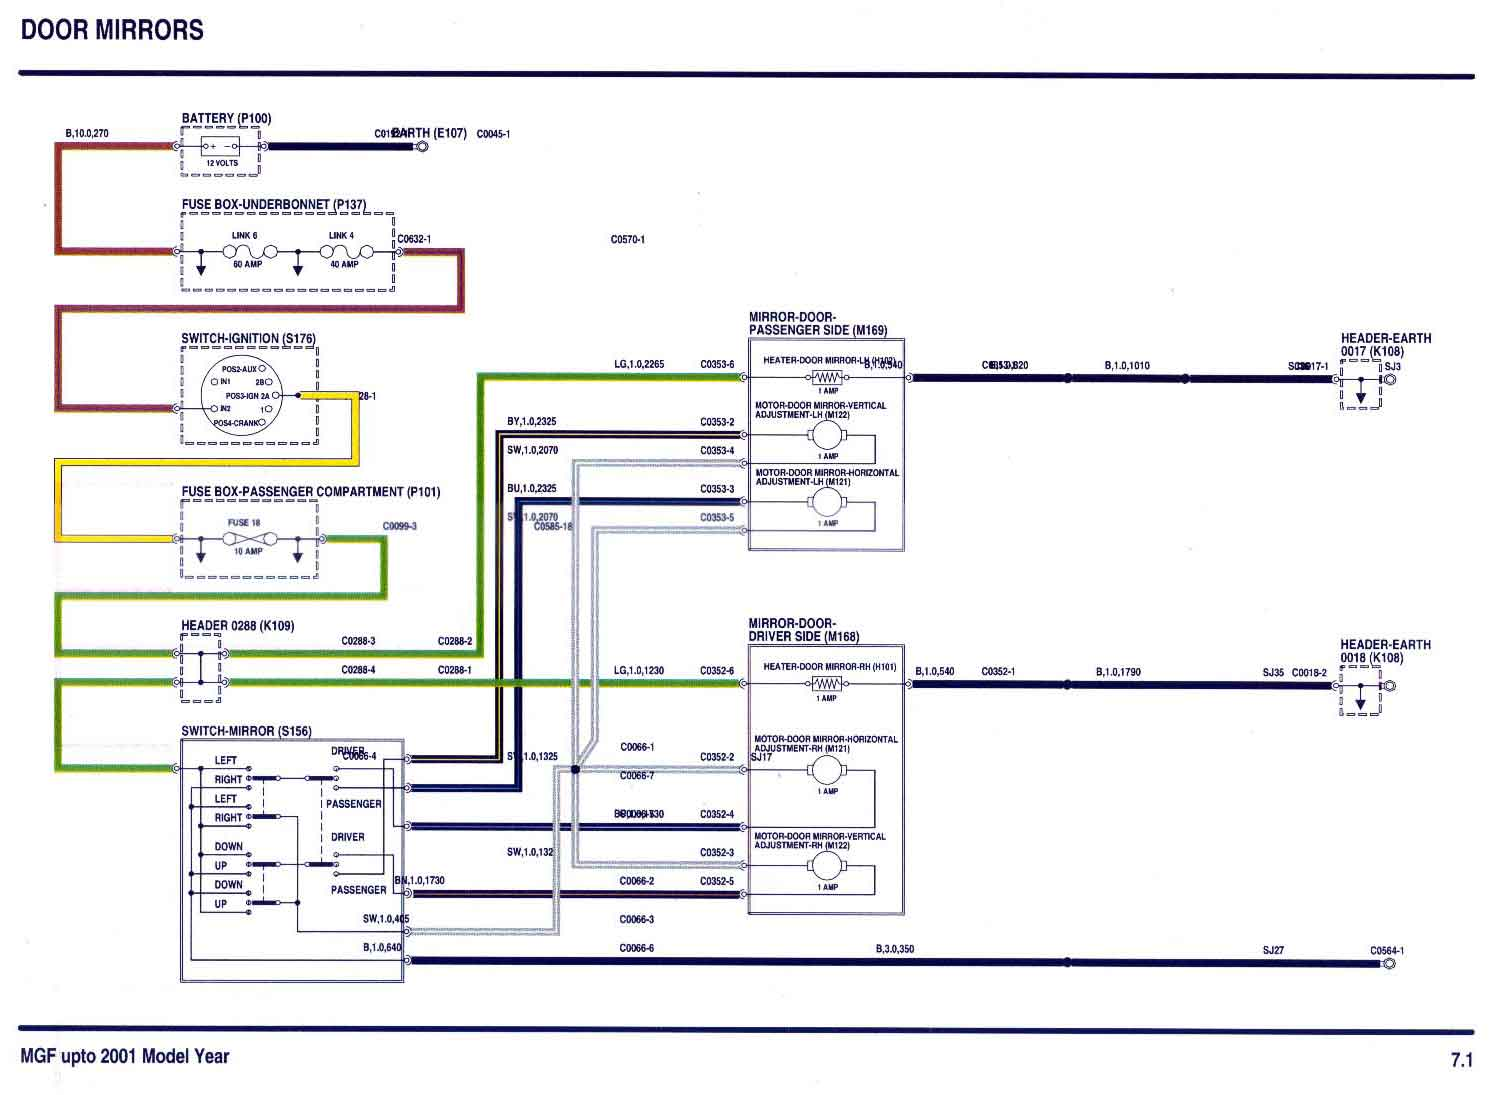 Mirrors electrical circuits rover 45 wiring diagram at reclaimingppi.co